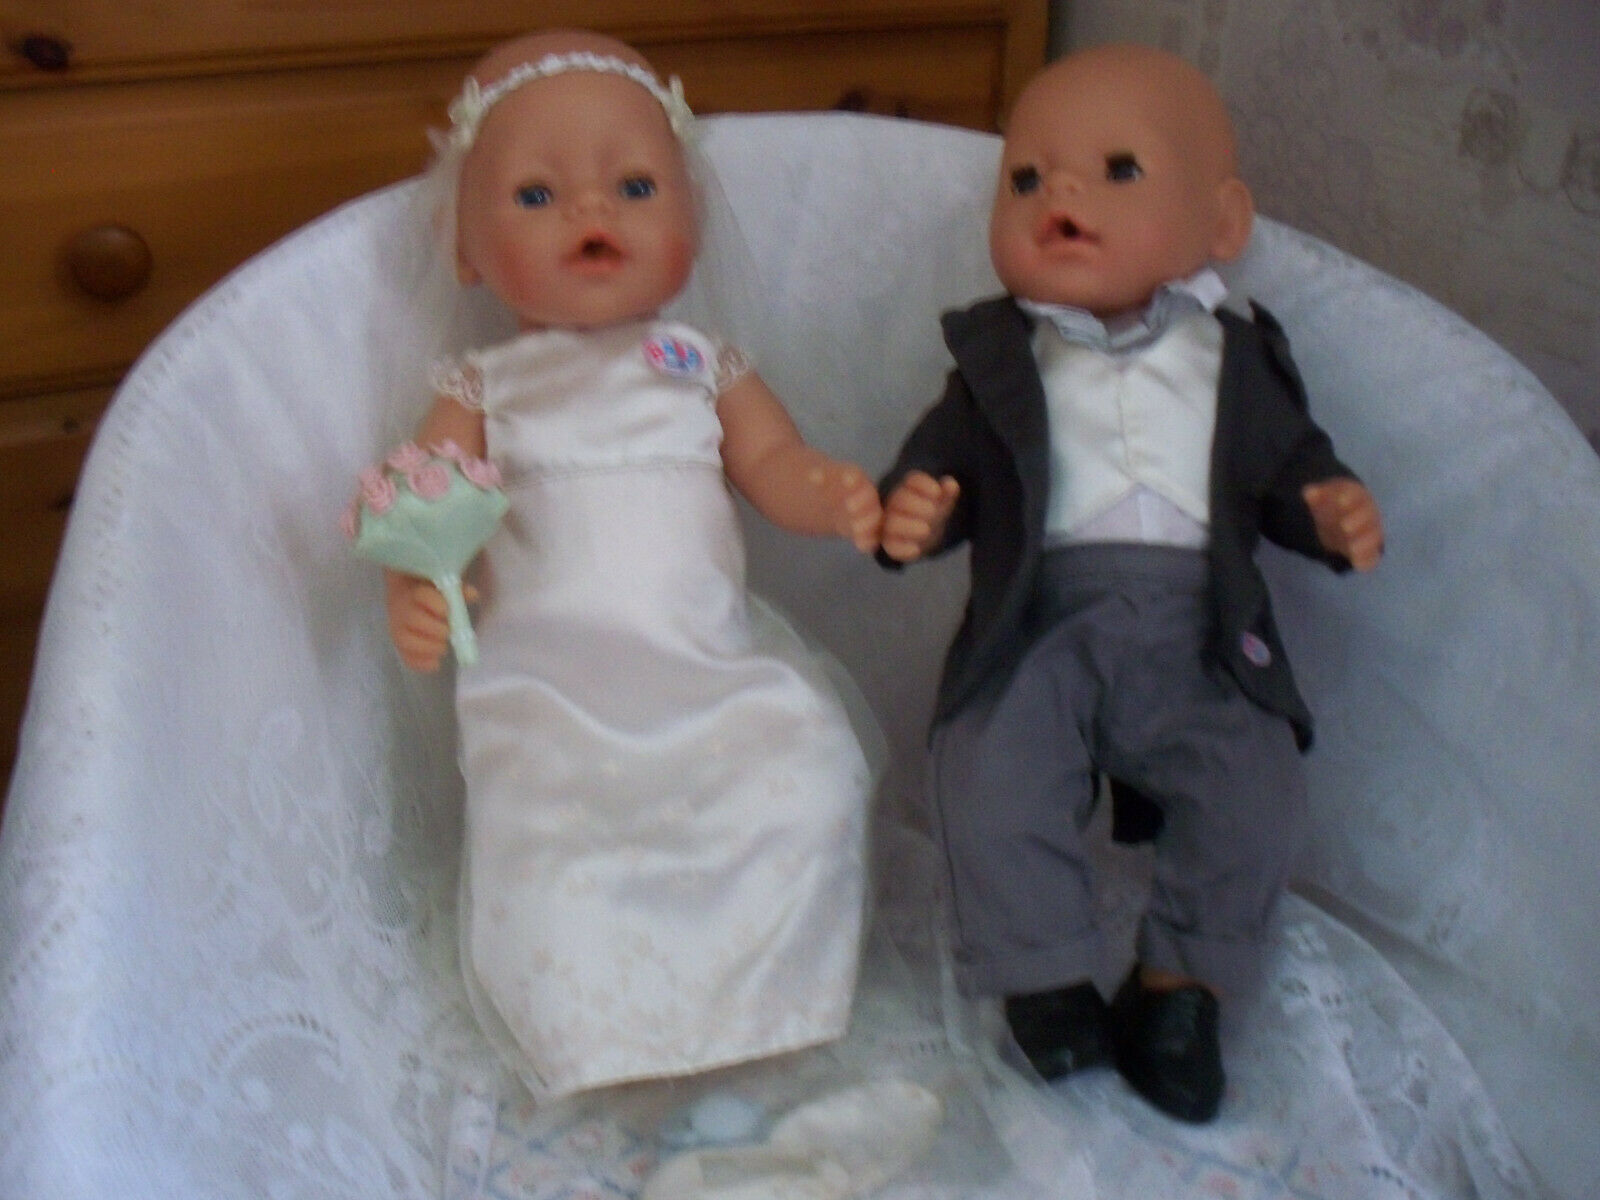 ZAPF CREATIONS BRIDE&GROOM 17 VINYL DOLLS DRESSED OUTFITS FOOTWEAR.ECT.VGC USED.